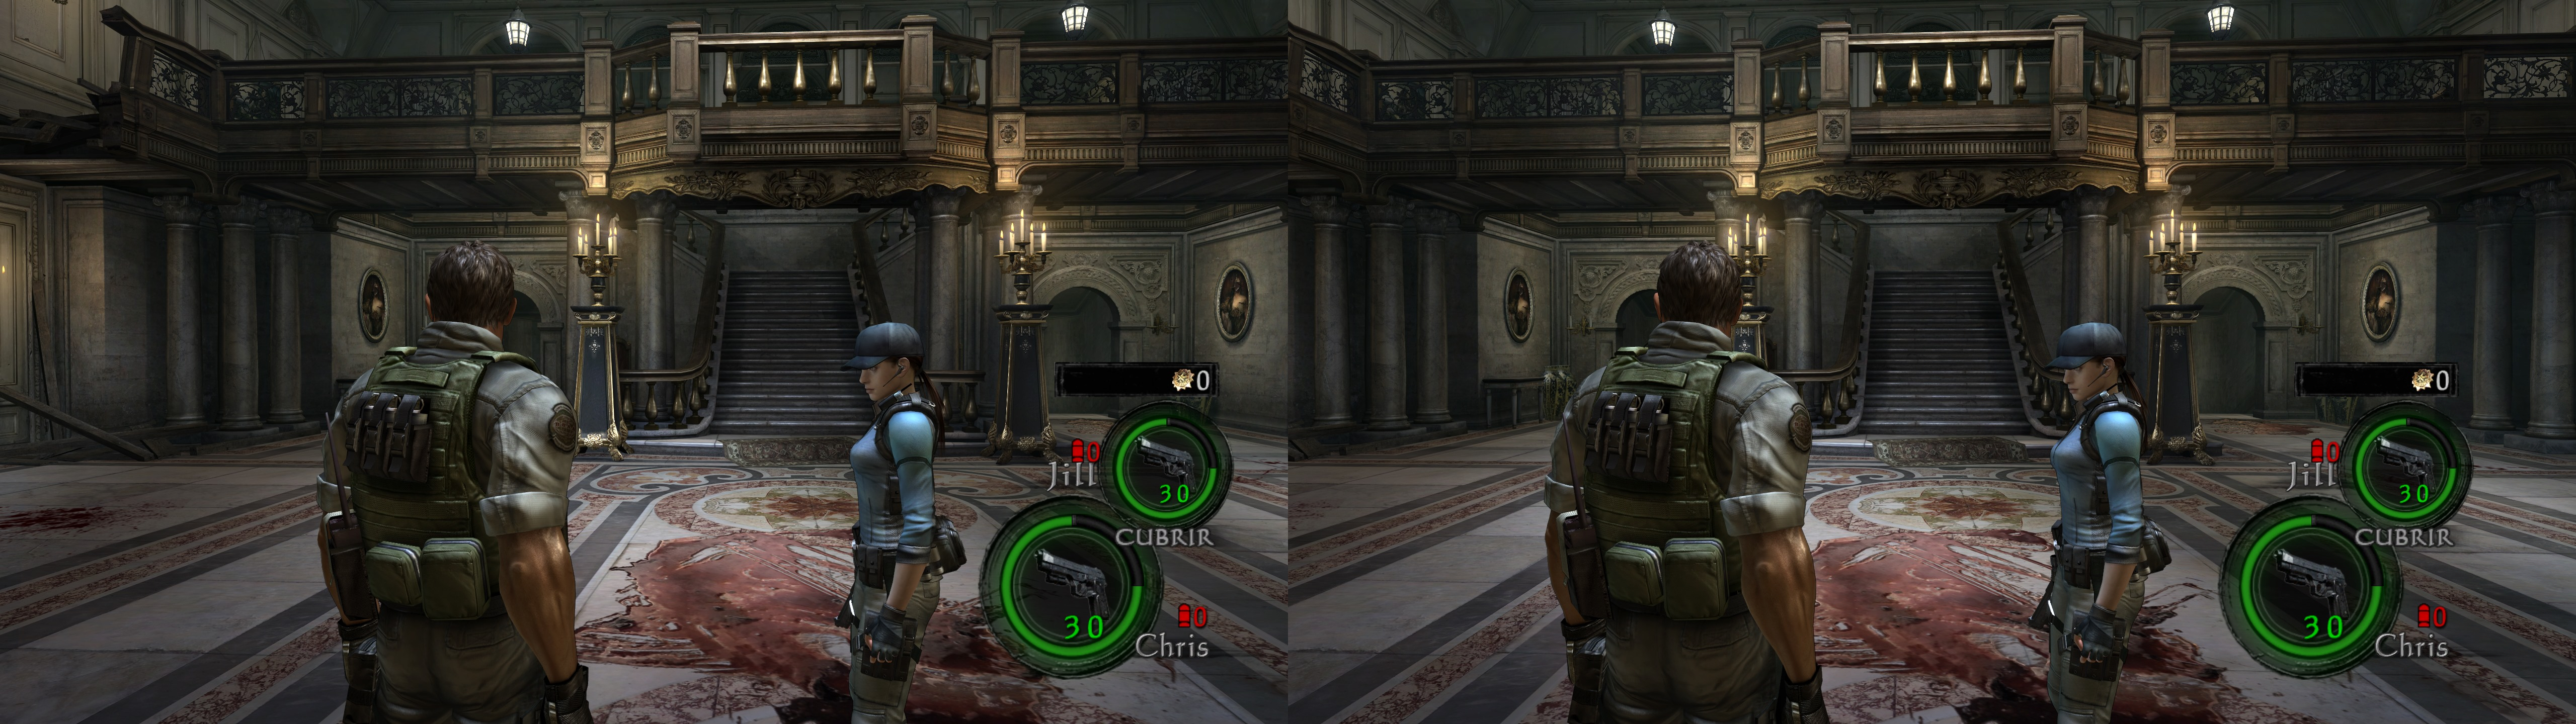 Helix Mod: Resident Evil 5 Gold Edition